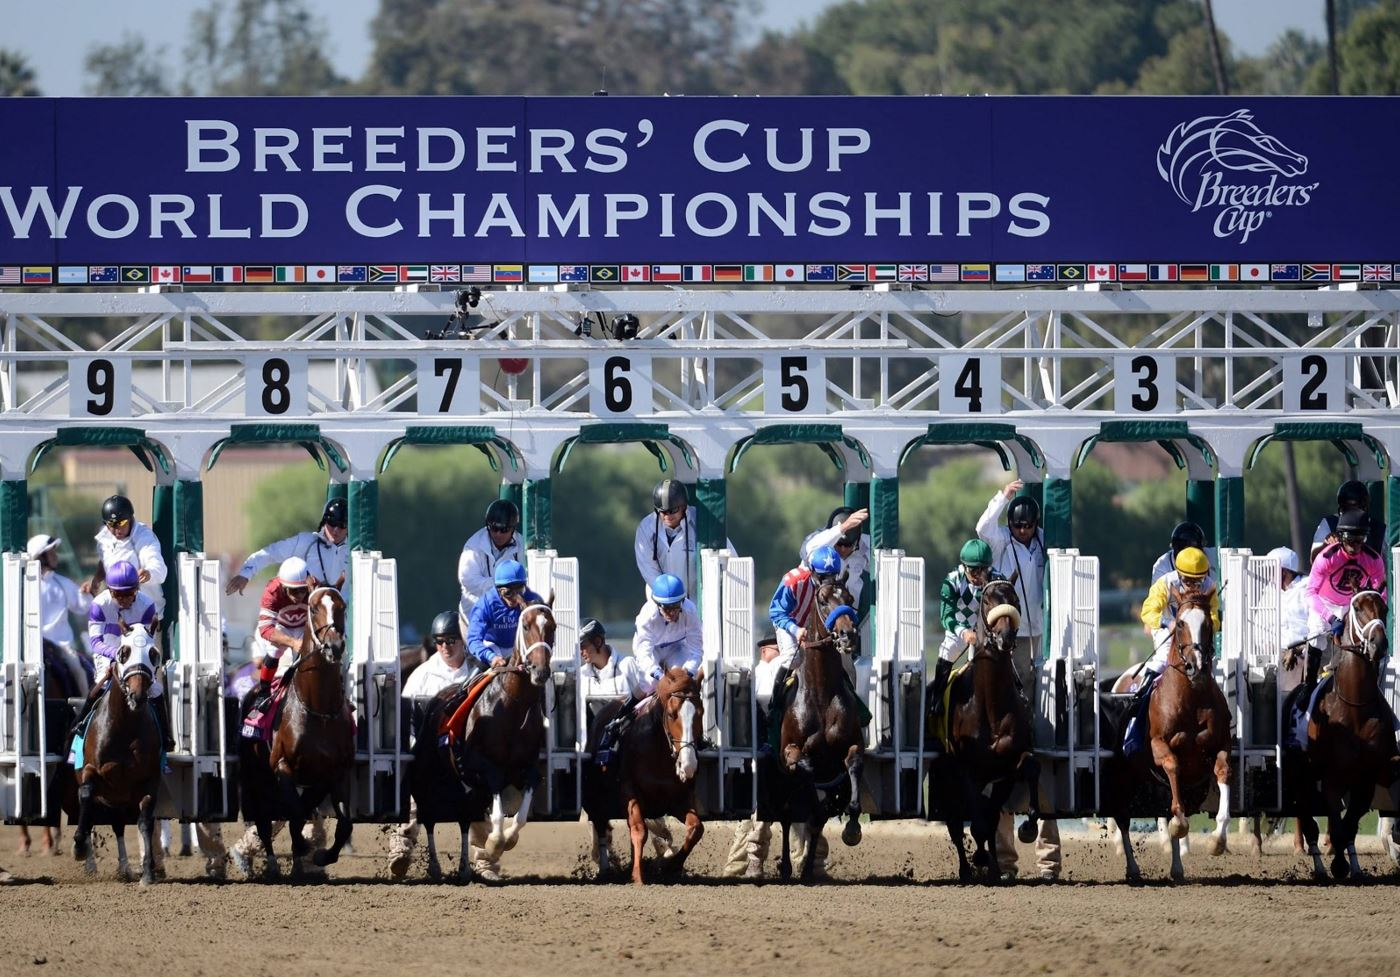 The Breeders' Cup